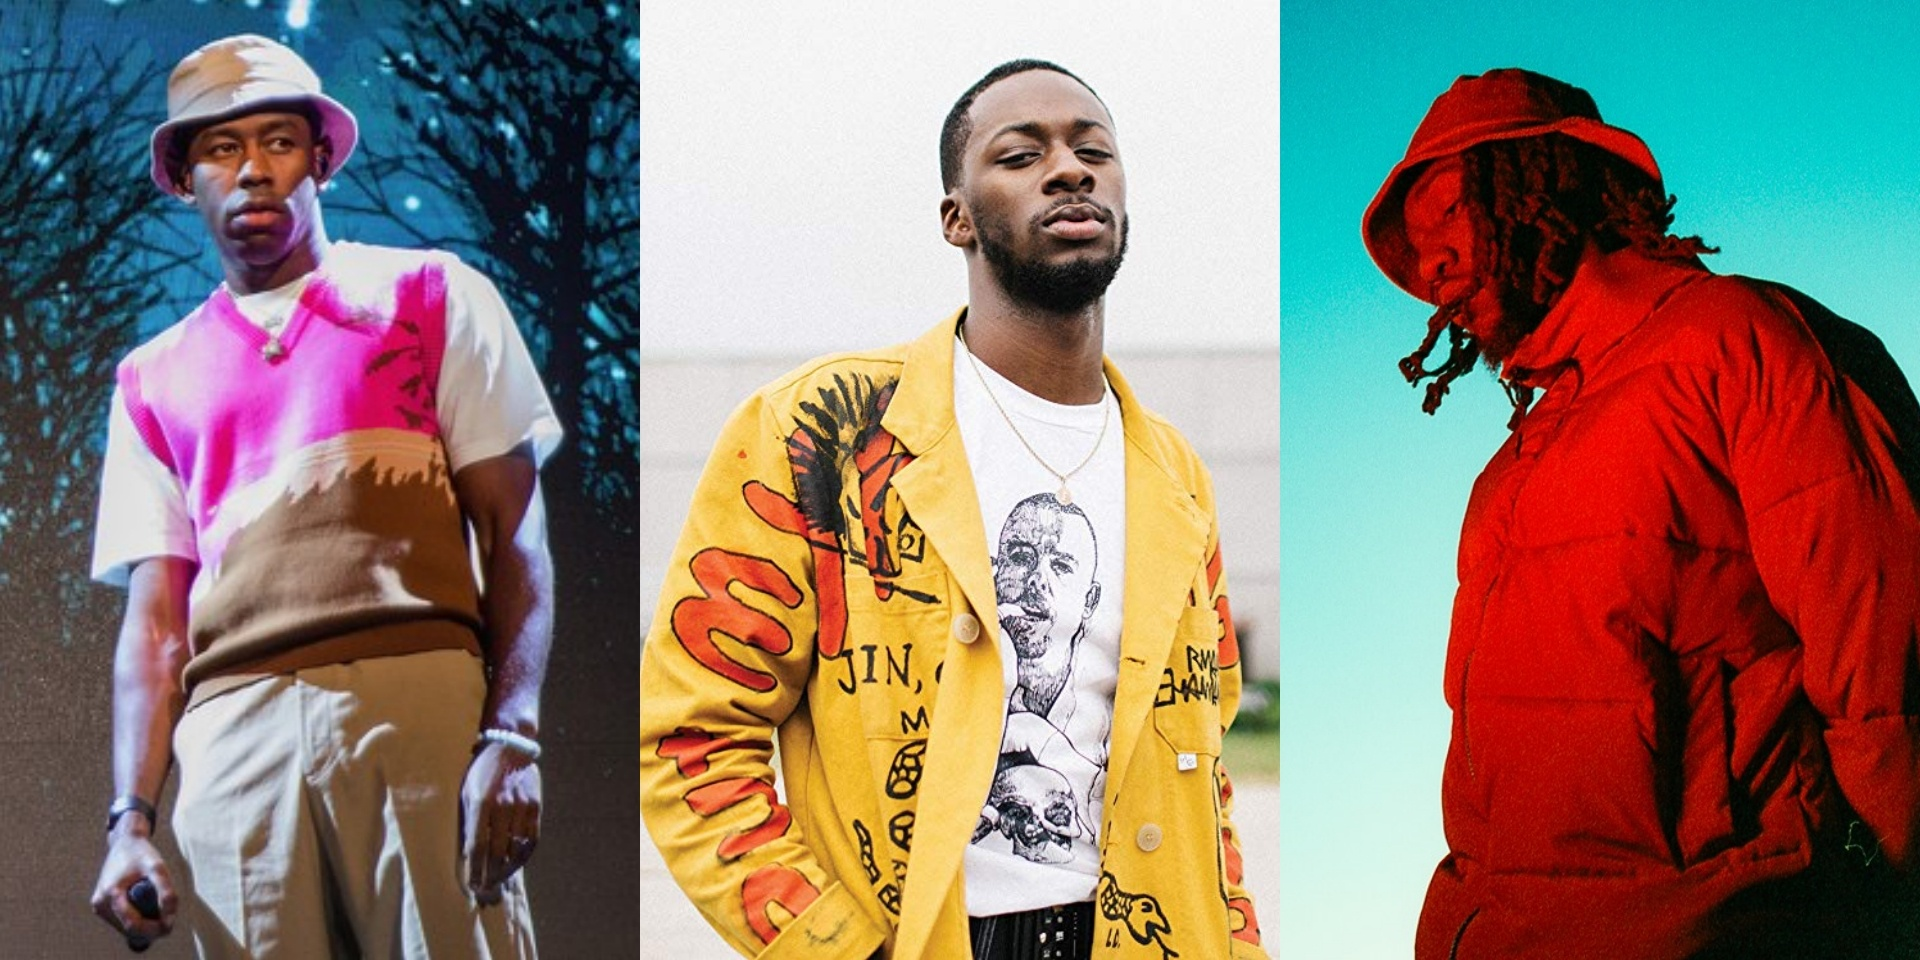 GoldLink releases groovy new song 'U Say' feat. Tyler, The Creator, Jay Prince – listen